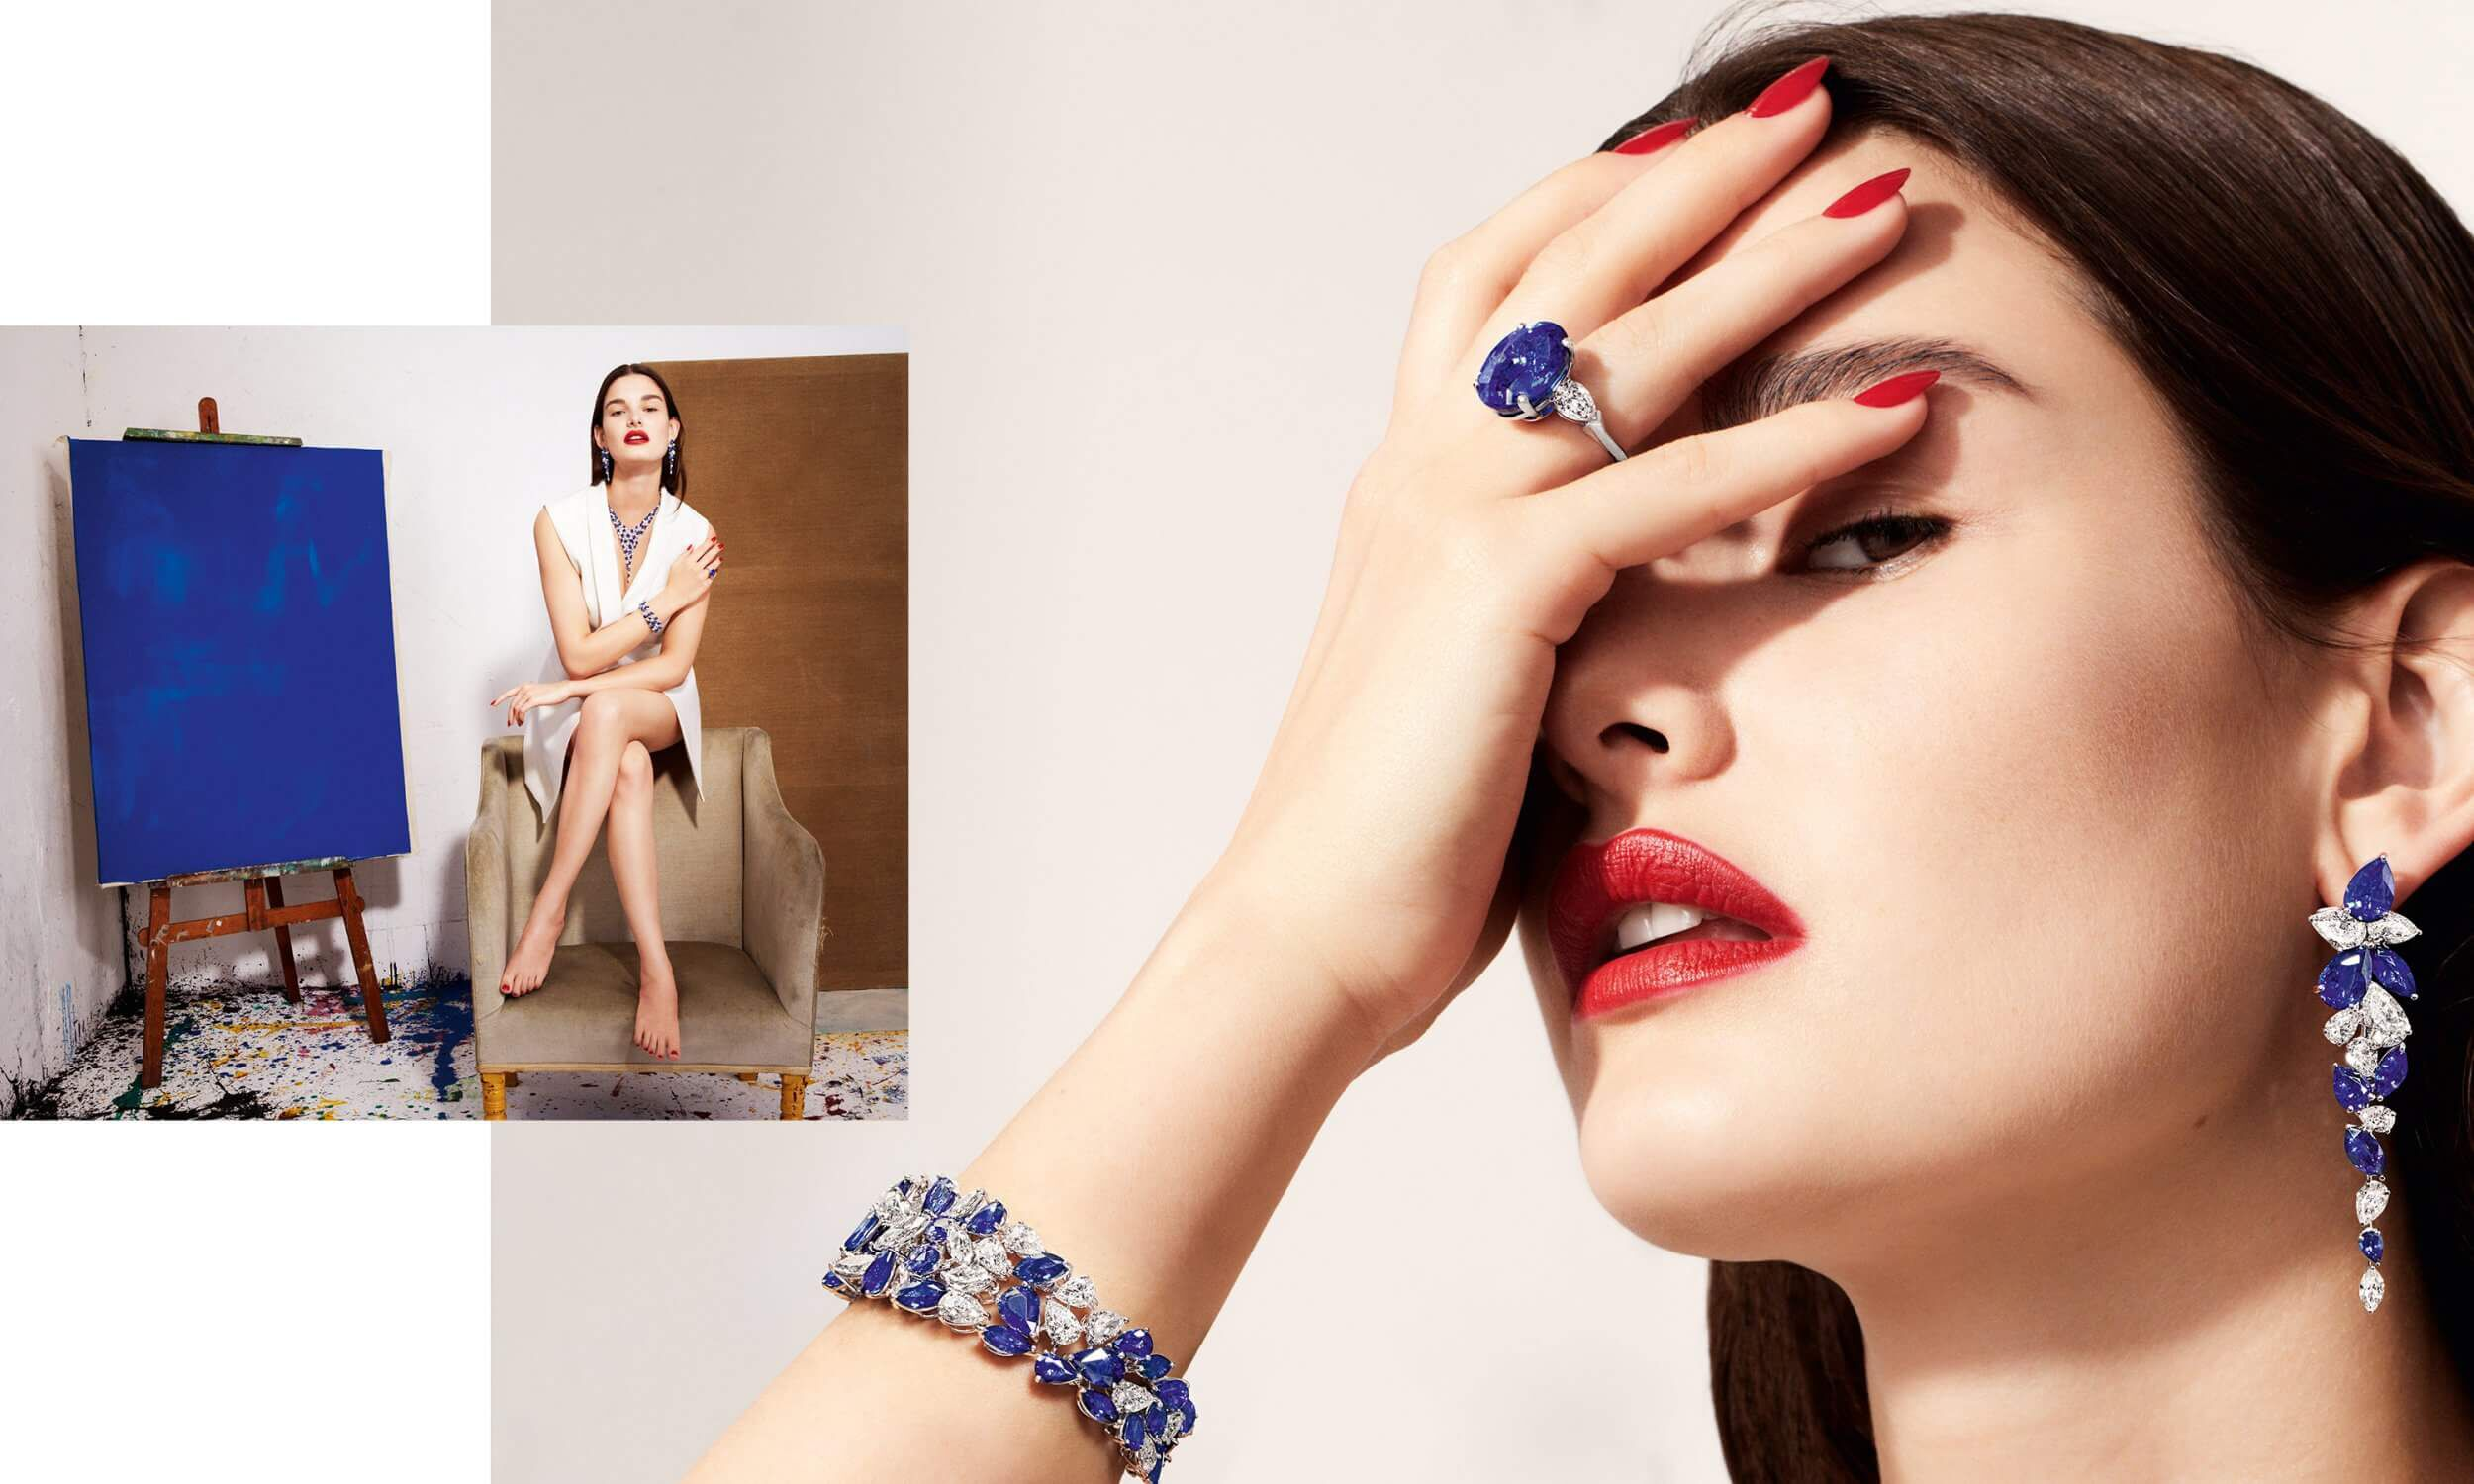 Model wears Graff sapphire and white diamond high jewellery earrings and ring